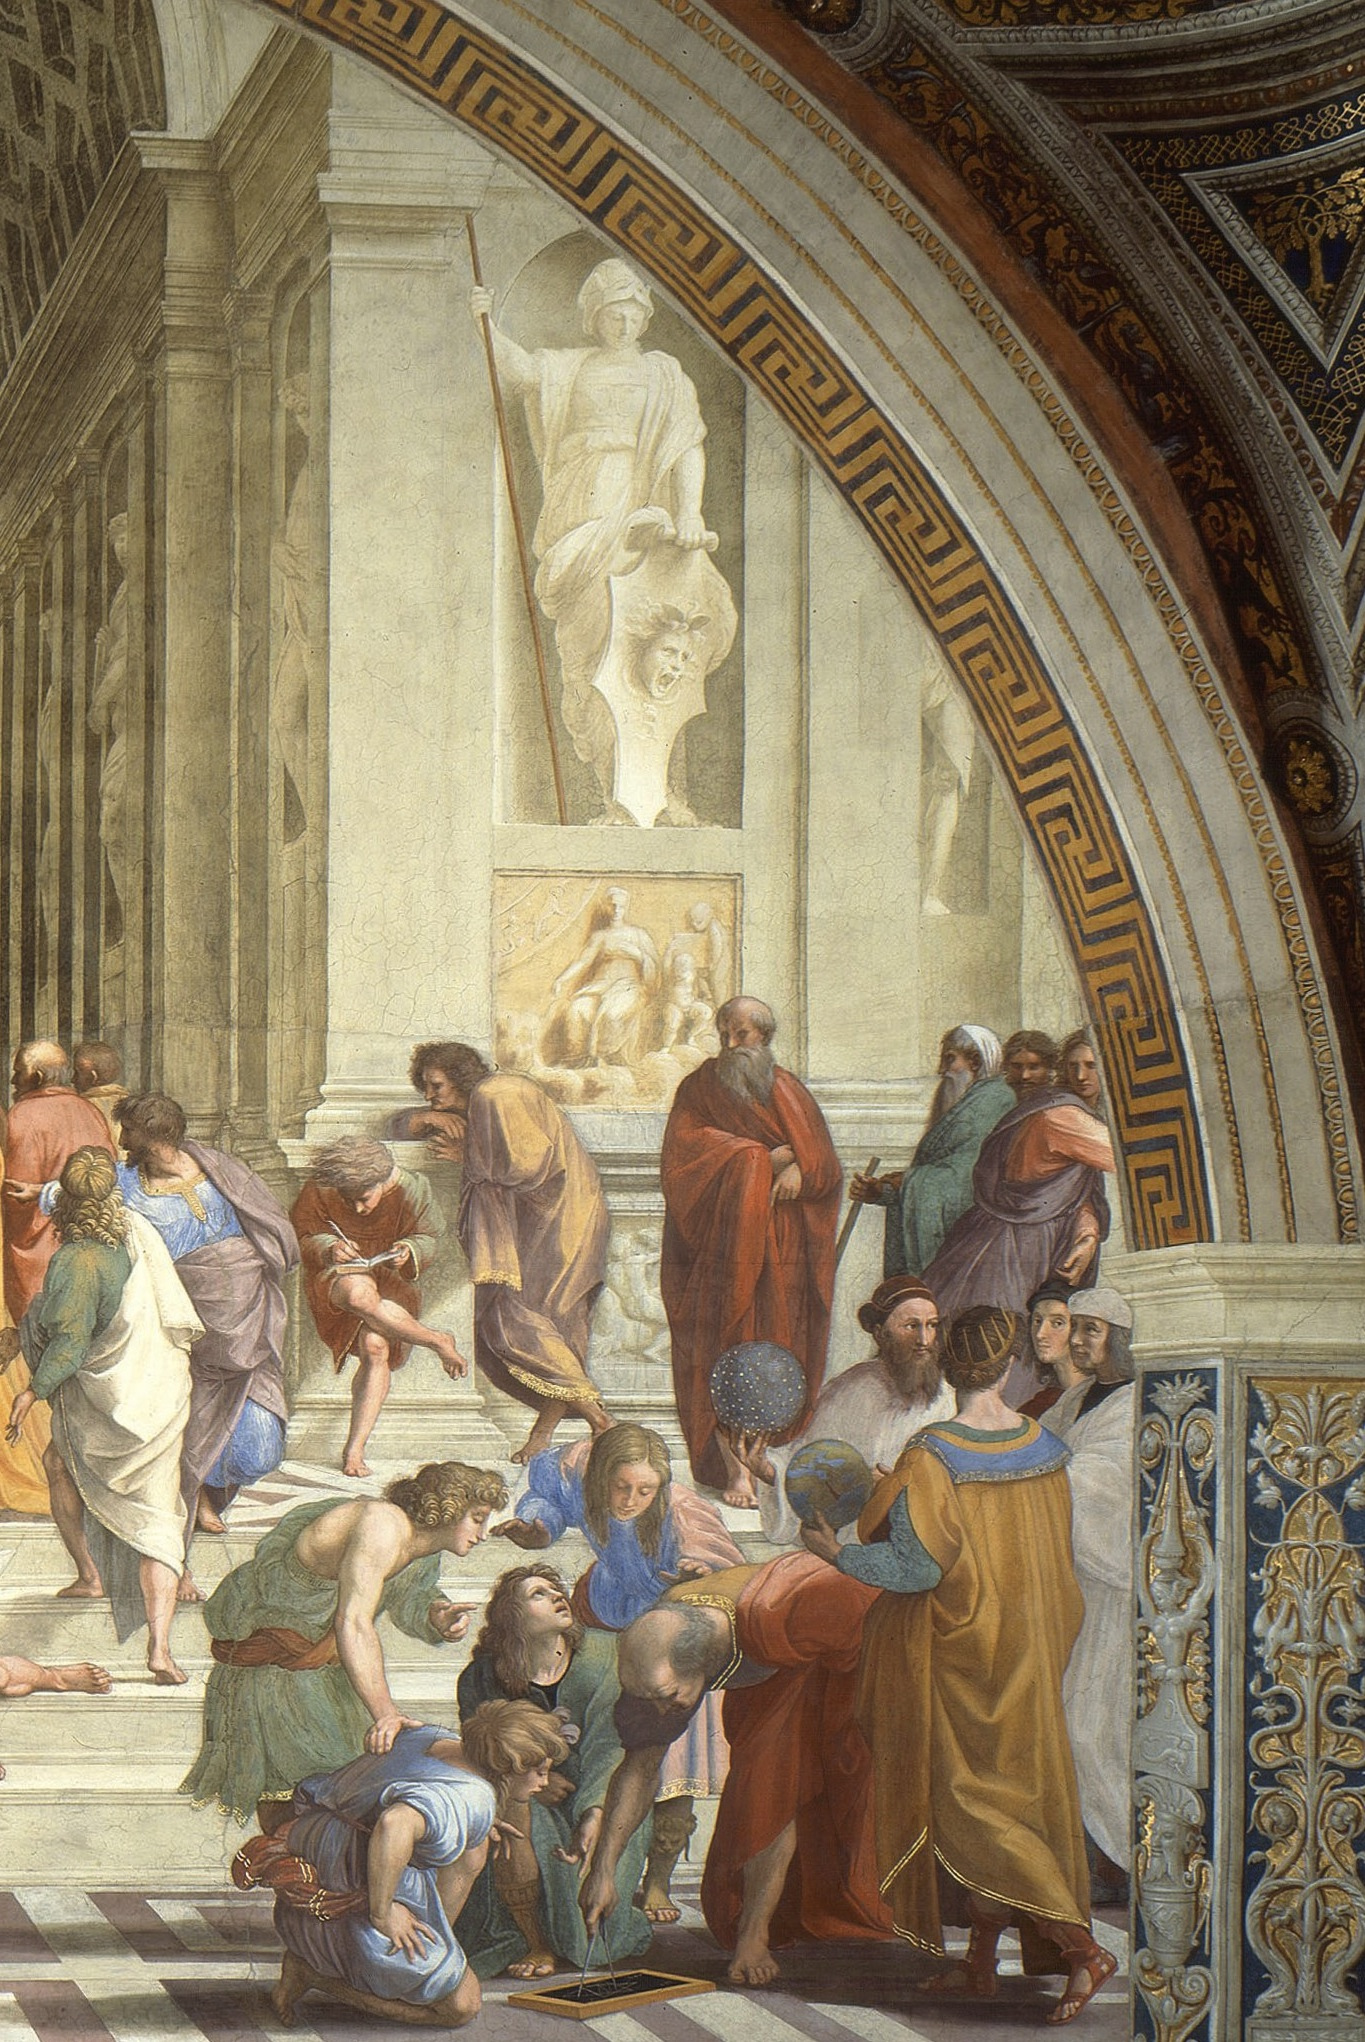 critical analysis the school of athens essay The school of athens essay examples 6 total results an analysis of the painting the school of athens by raphael 890 words 2 pages.